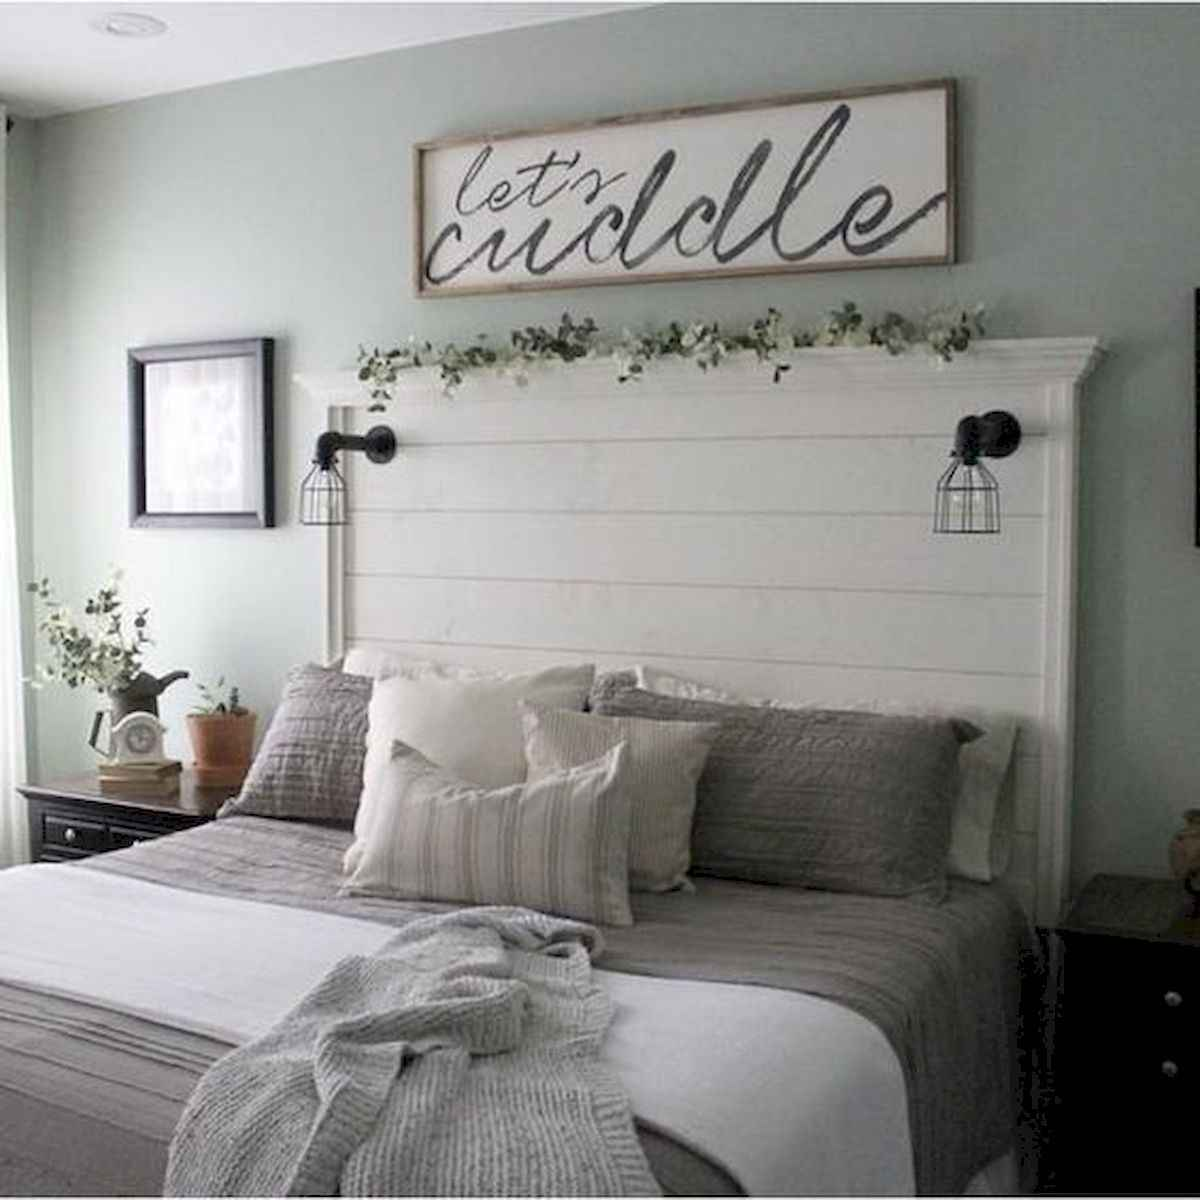 50 Creative Recycled DIY Projects Pallet Beds Design Ideas (35)